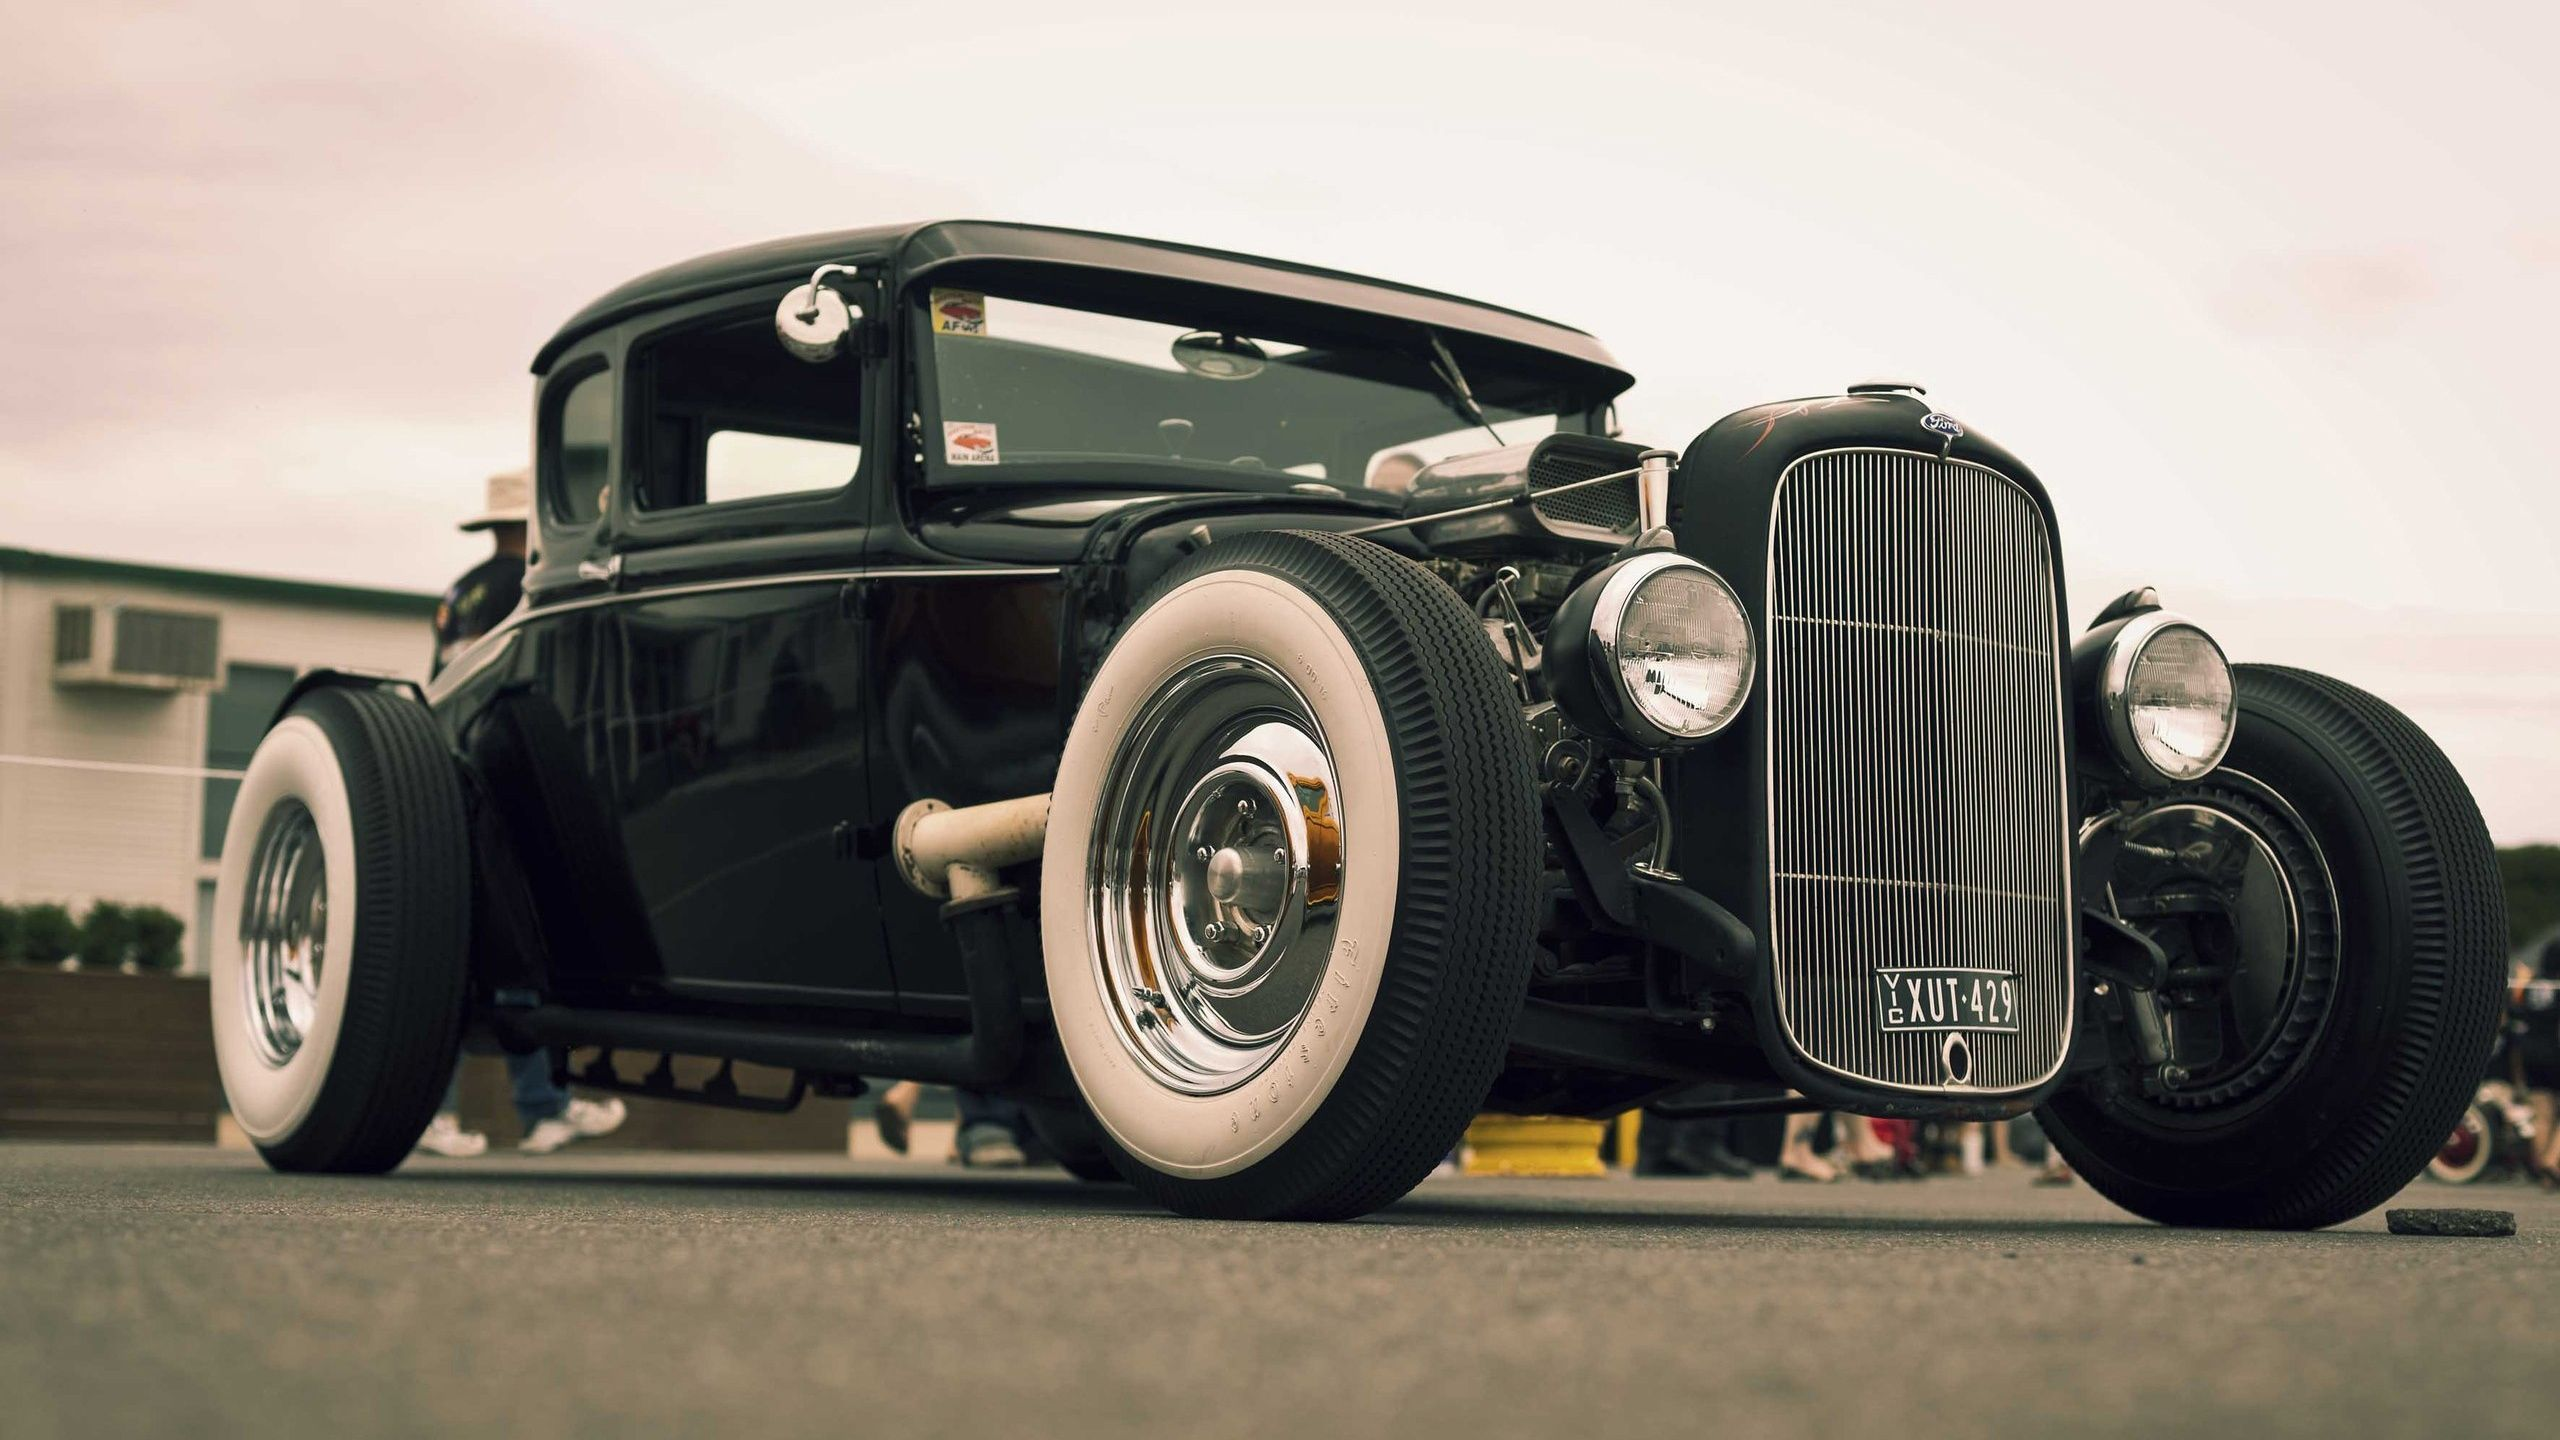 Classic Black Hot Rod HD Wallpaper - http://1sthdwallpapers.com ...